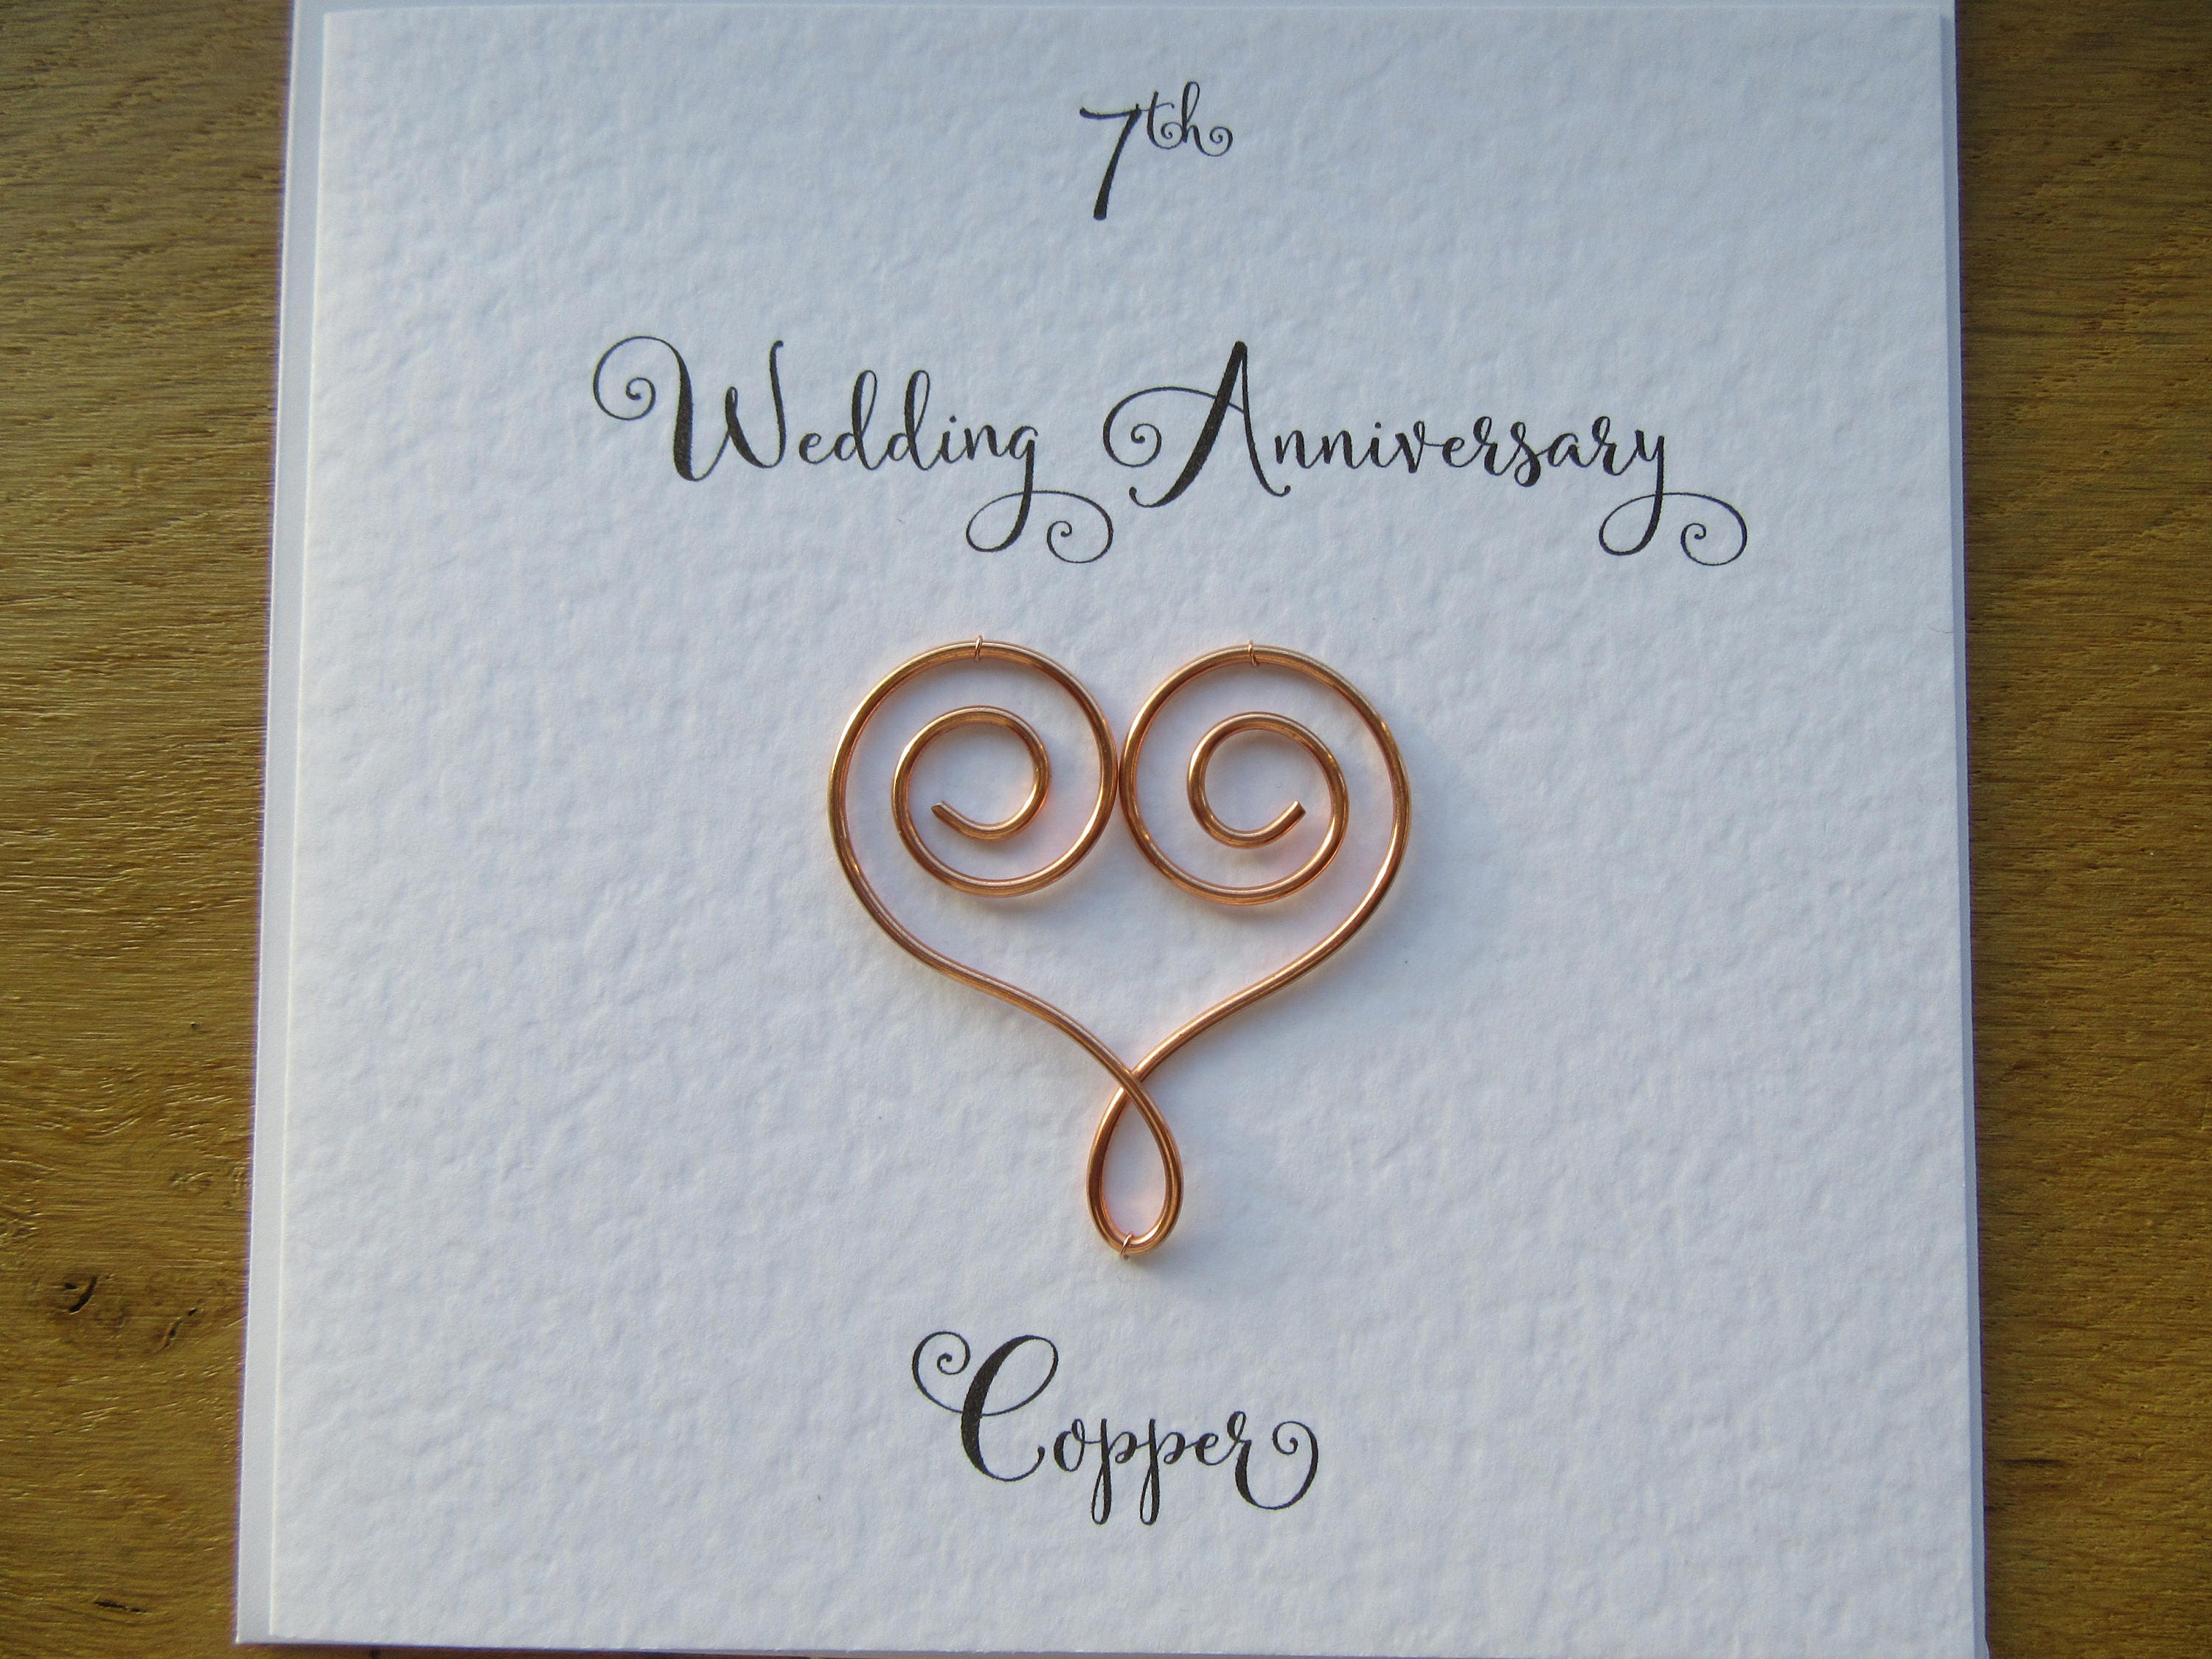 Gifts For 7th Wedding Anniversary: 7th Anniversary Card Copper 7 Wedding Anniversary Card